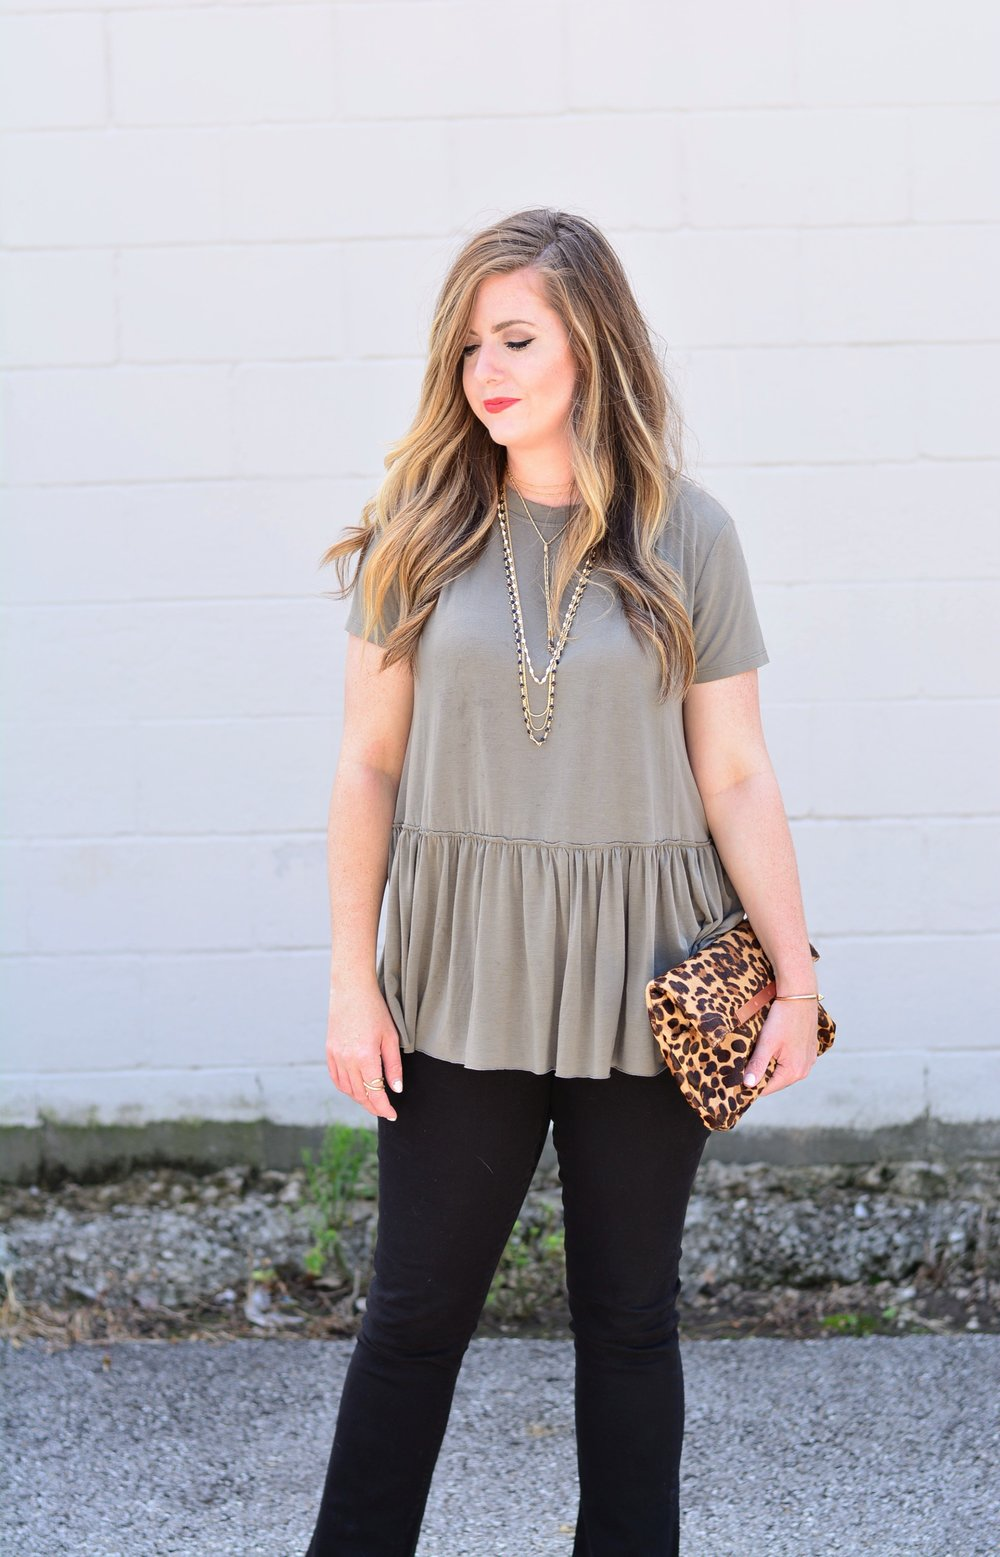 Olive drop waist tops with black jeans